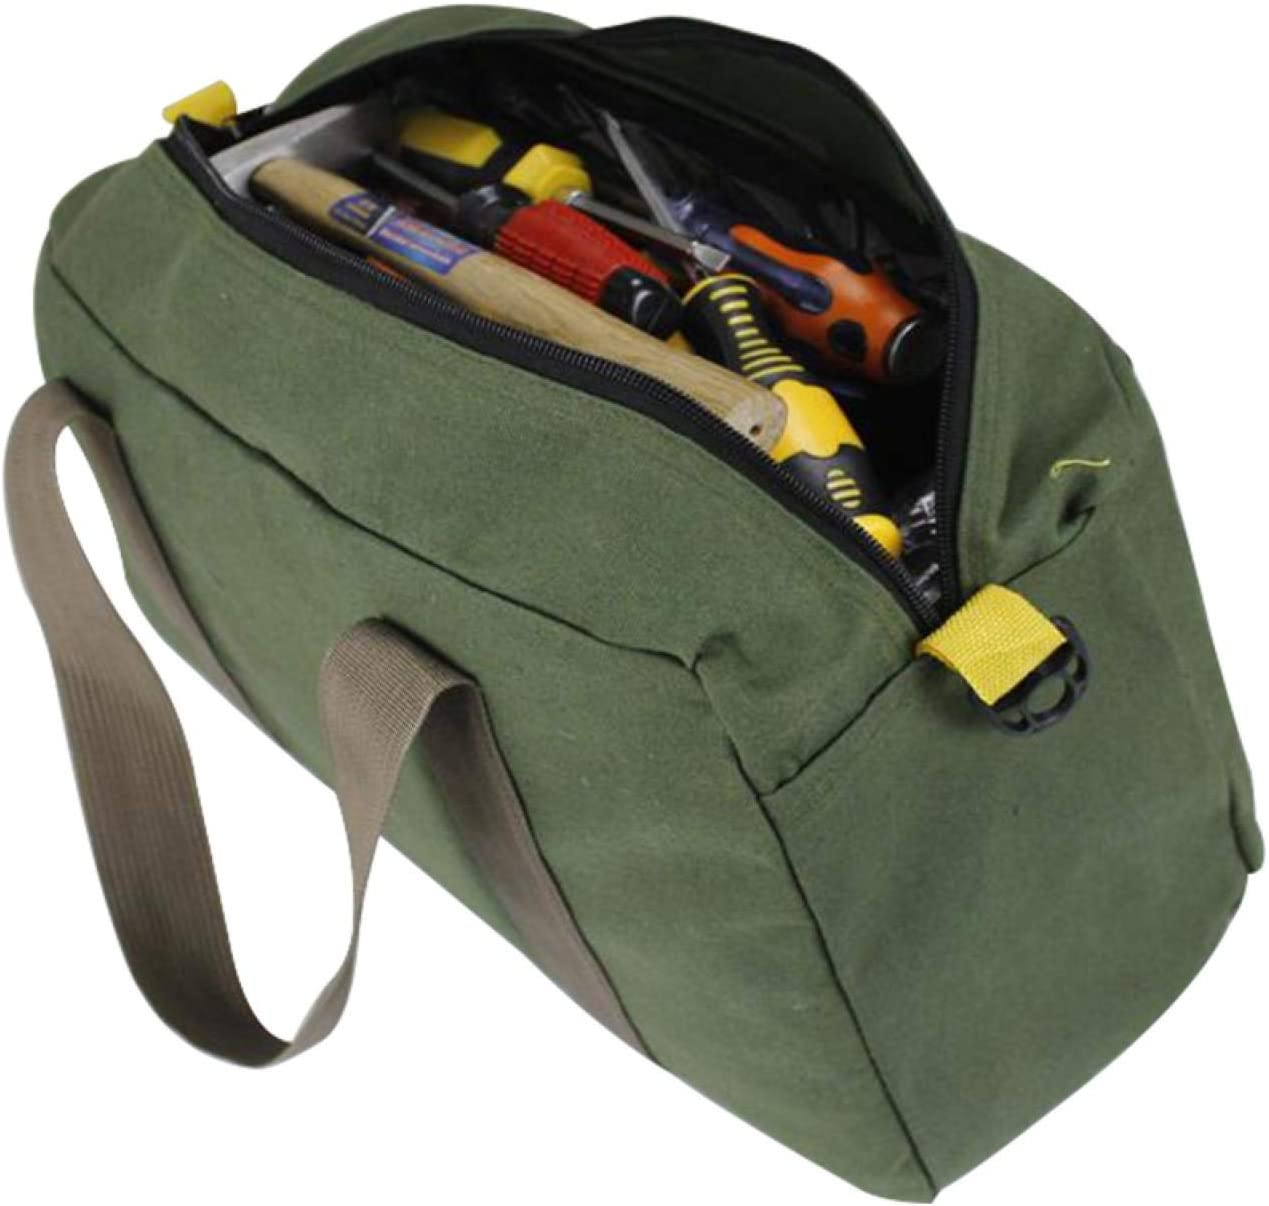 Manufacturer regenerated product Fashionable Portable Tool Bag Canvas Heavy Capacity Handbag High with Duty